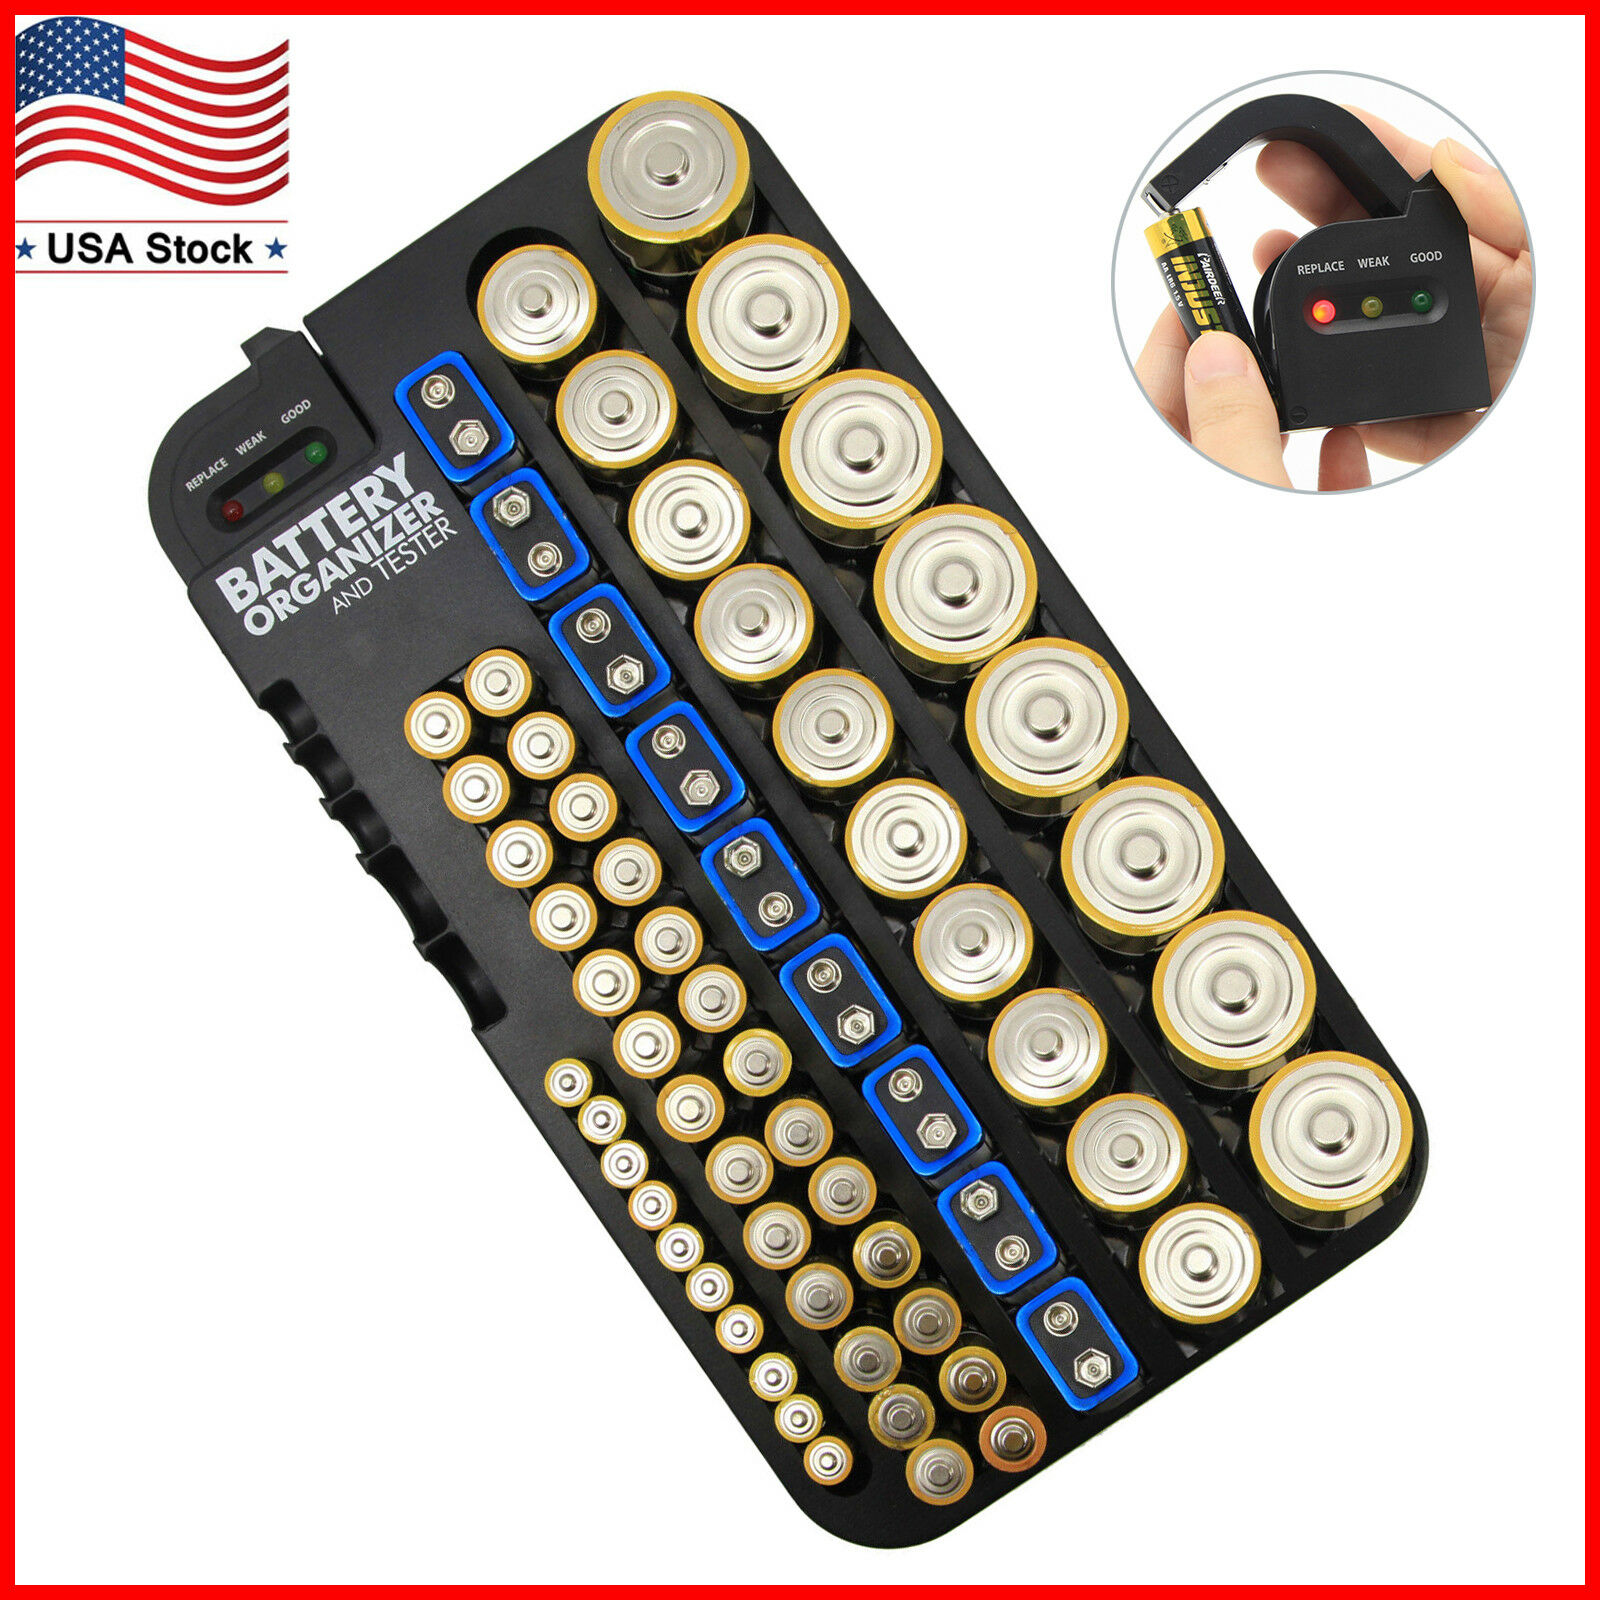 AA AAA D C 9V Battery Storage Case Organizer with Removable Tester Wall Mount